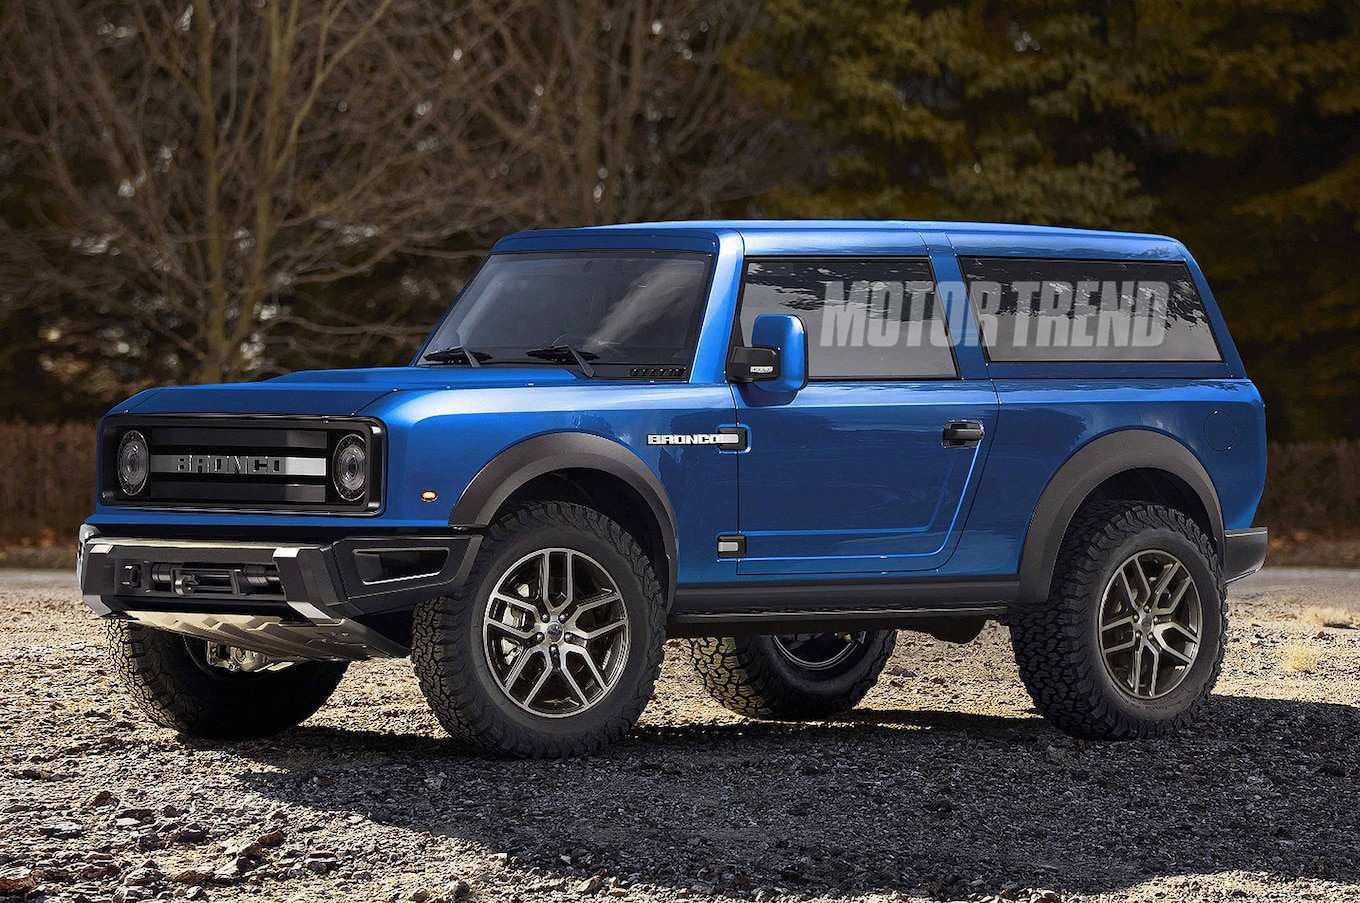 98 The Best 2019 Ford Bronco New Model And Performance